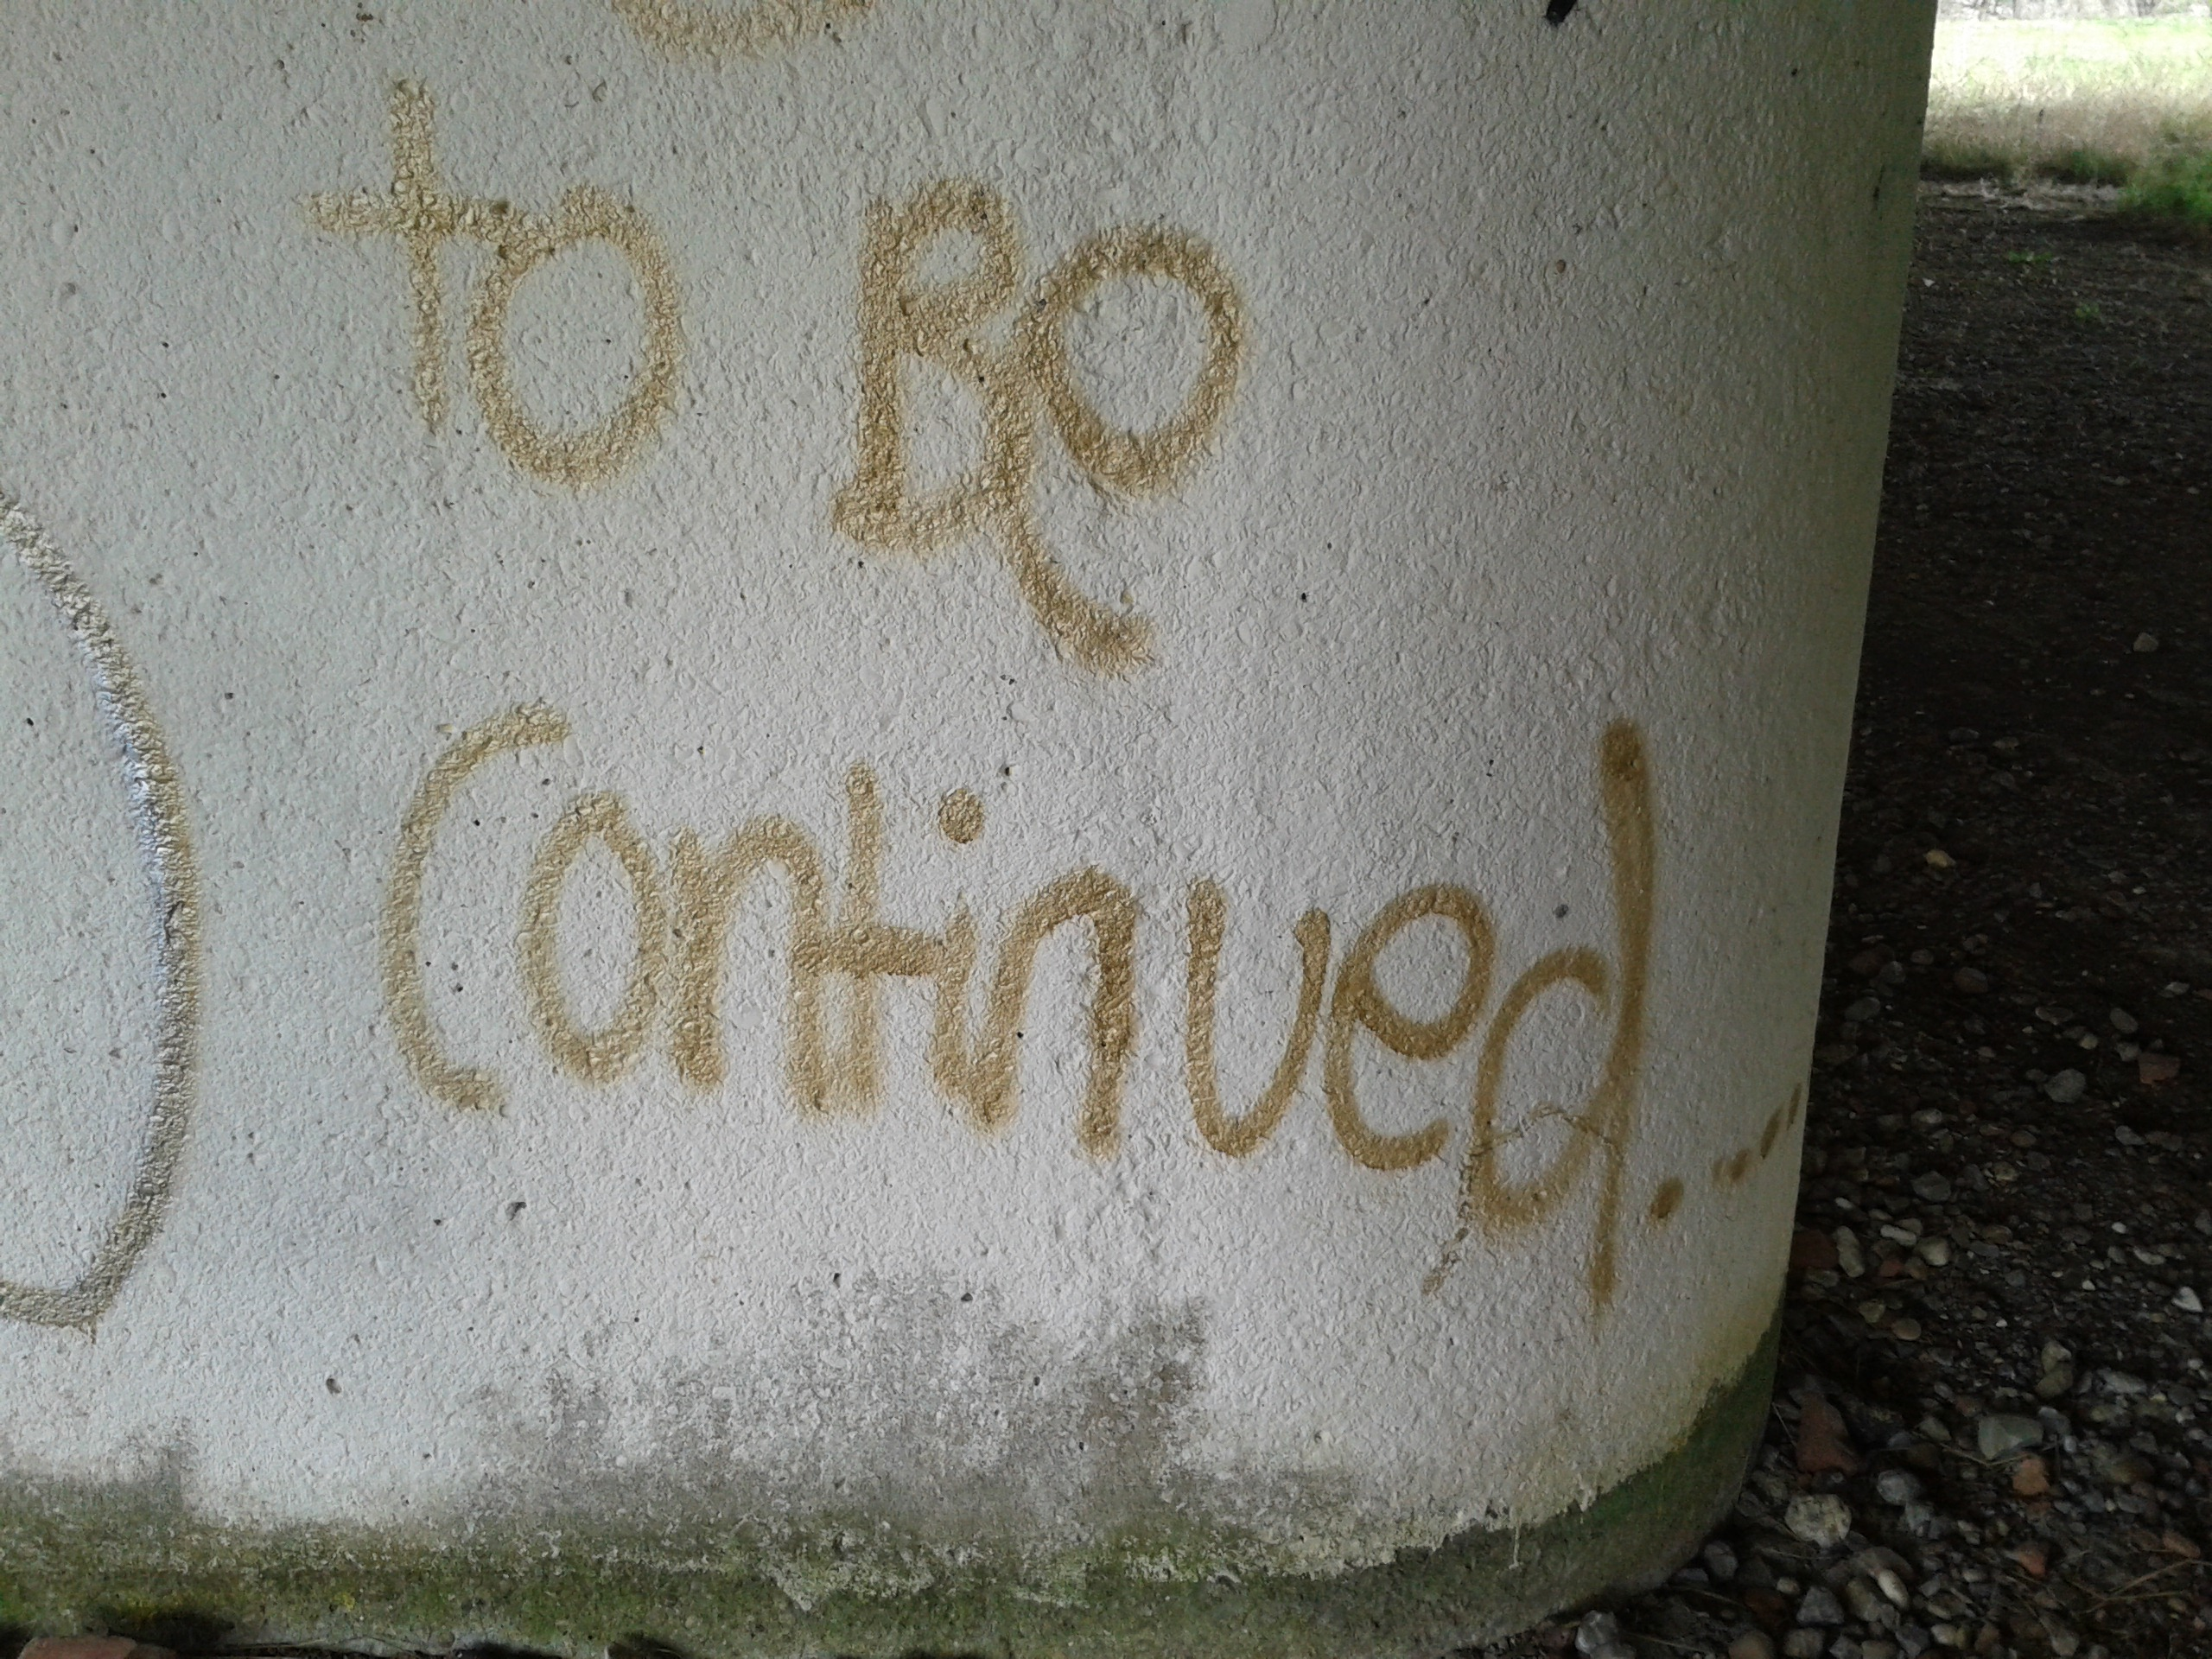 To Be Continued... (Beck Pitt, CC-BY 4.0)